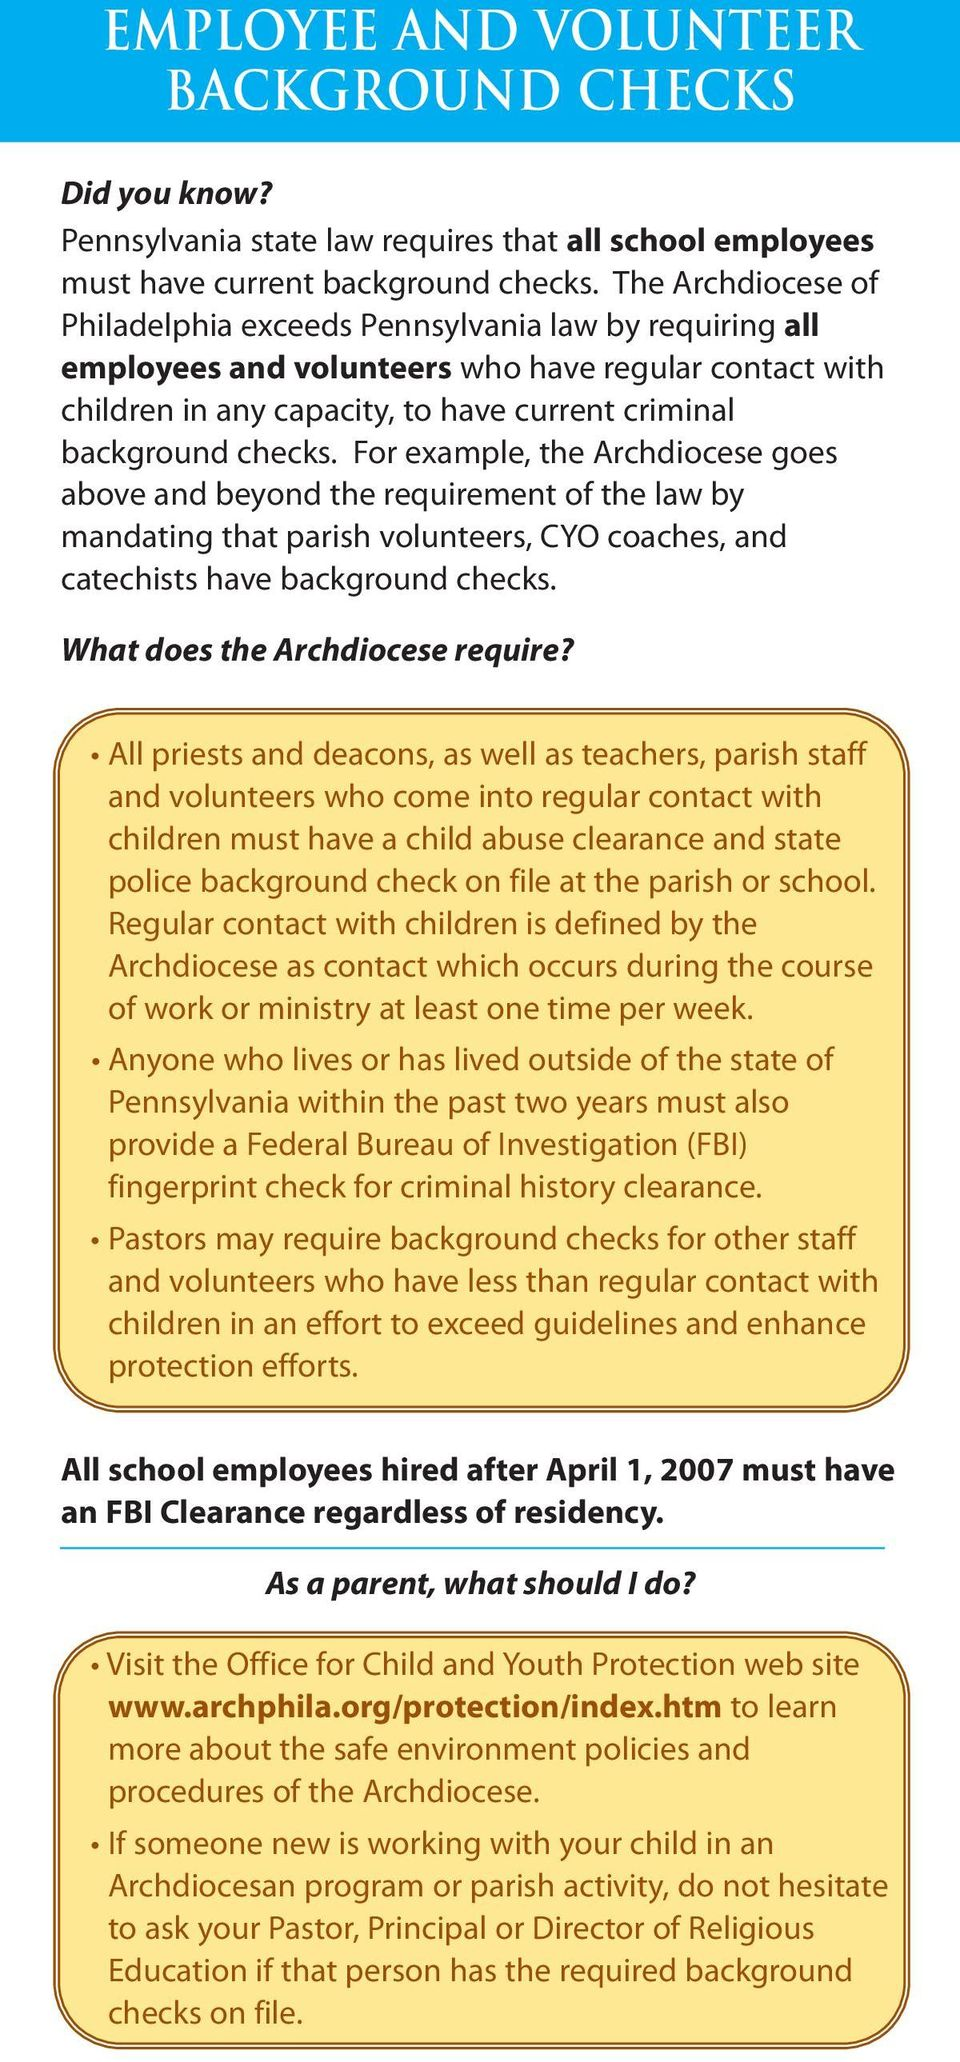 For example, the Archdiocese goes above and beyond the requirement of the law by mandating that parish volunteers, CYO coaches, and catechists have background checks.